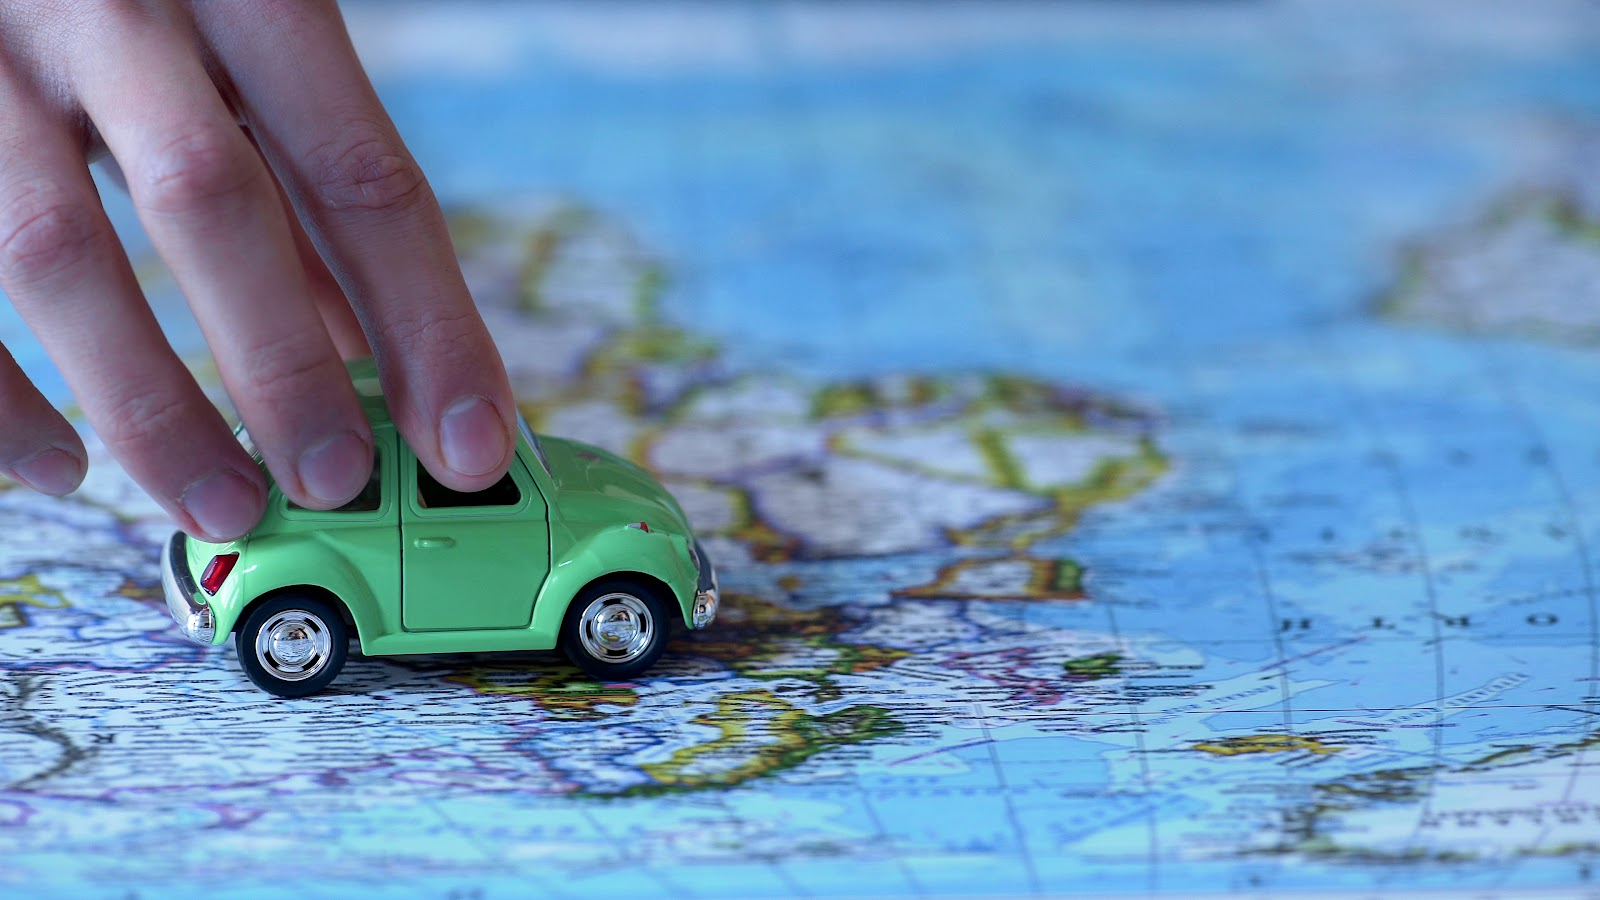 Someone using their hand to drive a small toy car over the top of a map of the world.